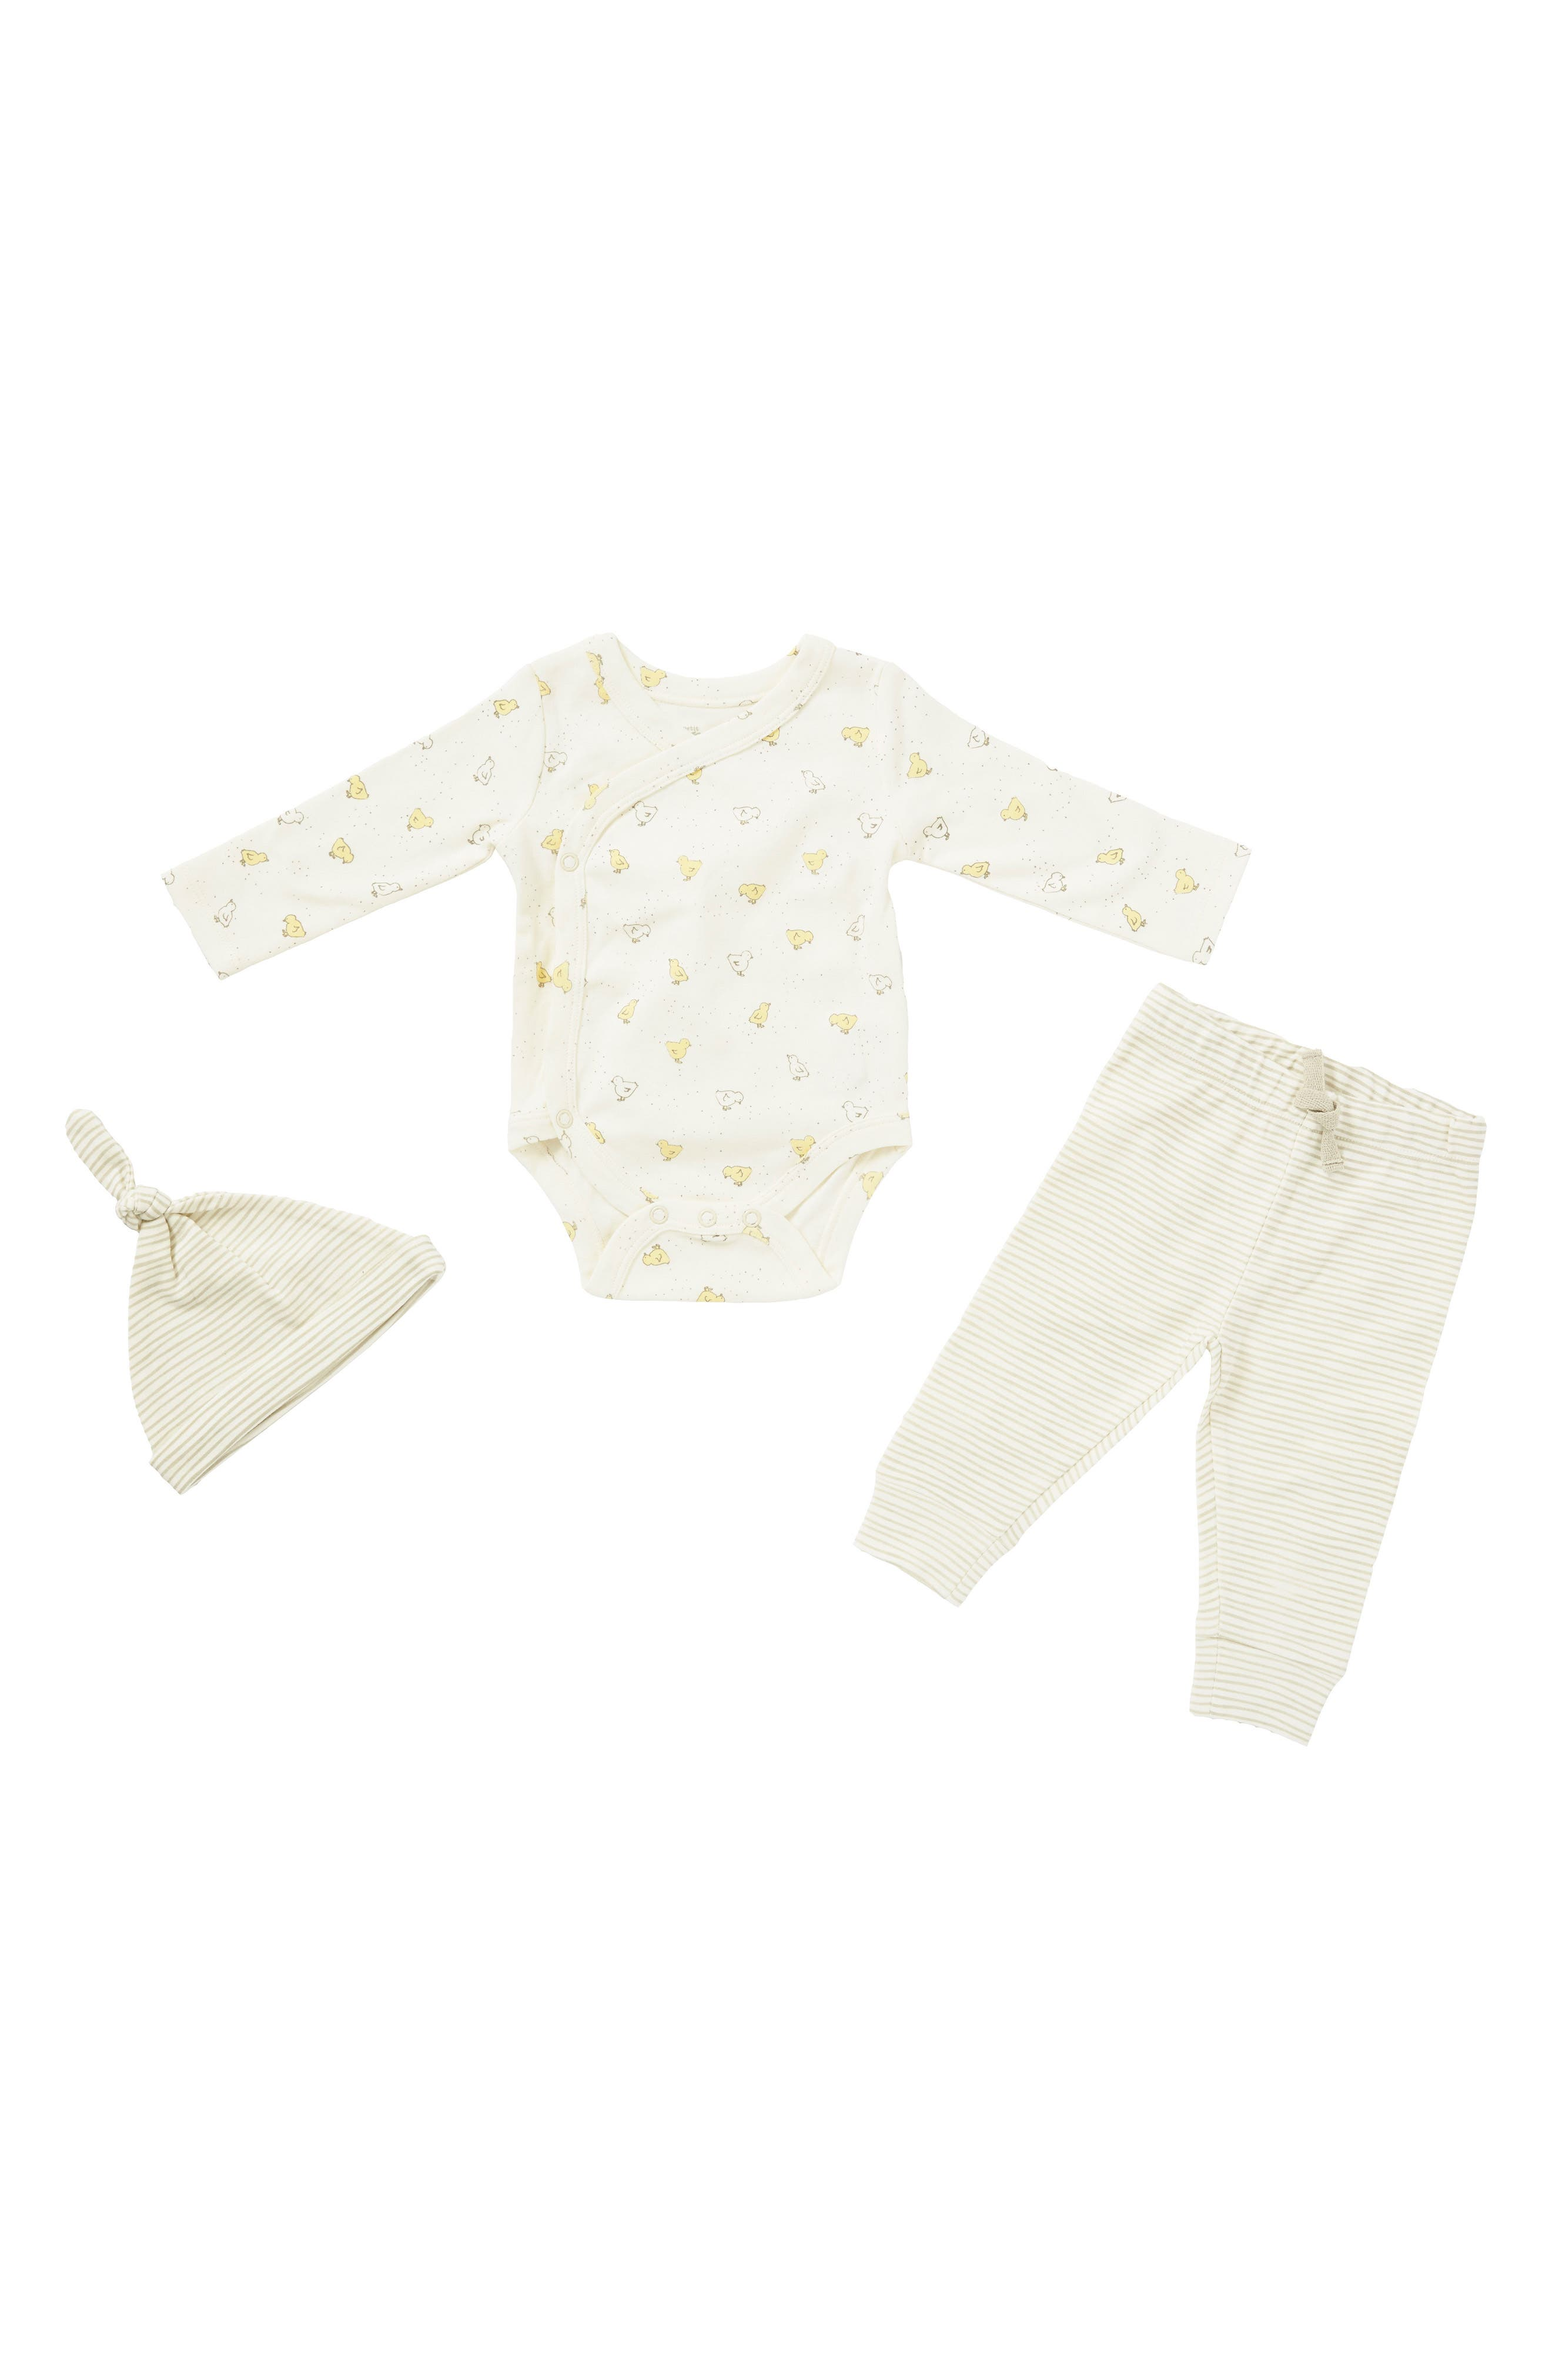 Main Image - Petit Pehr Baby Chick Bodysuit, Pants & Hat Set (Baby)